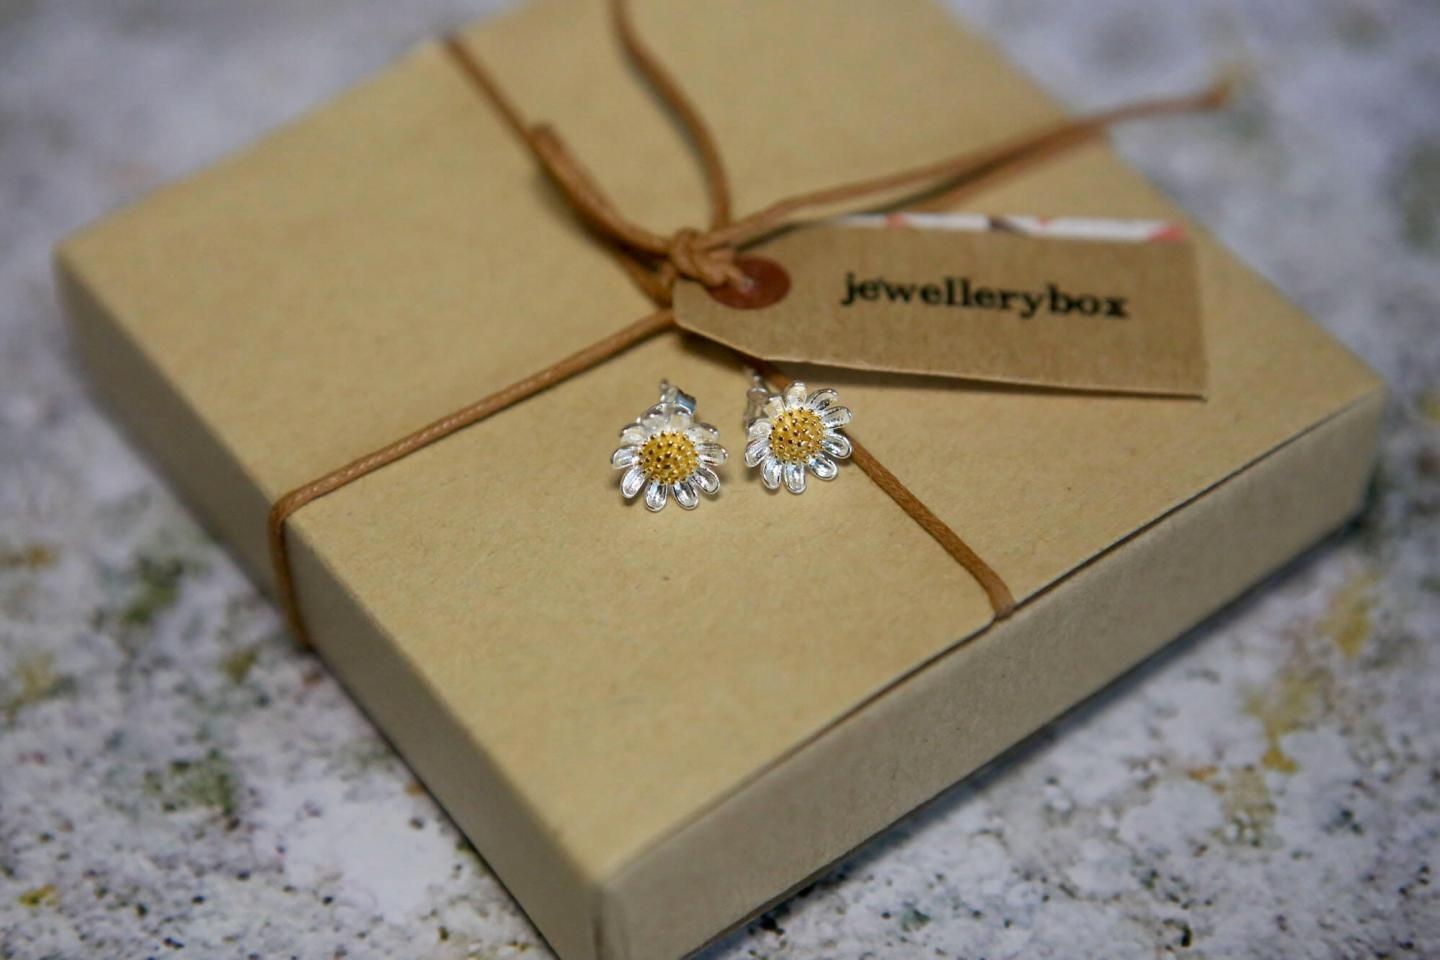 Jewellery Box Christmas Gift Guide | 2017